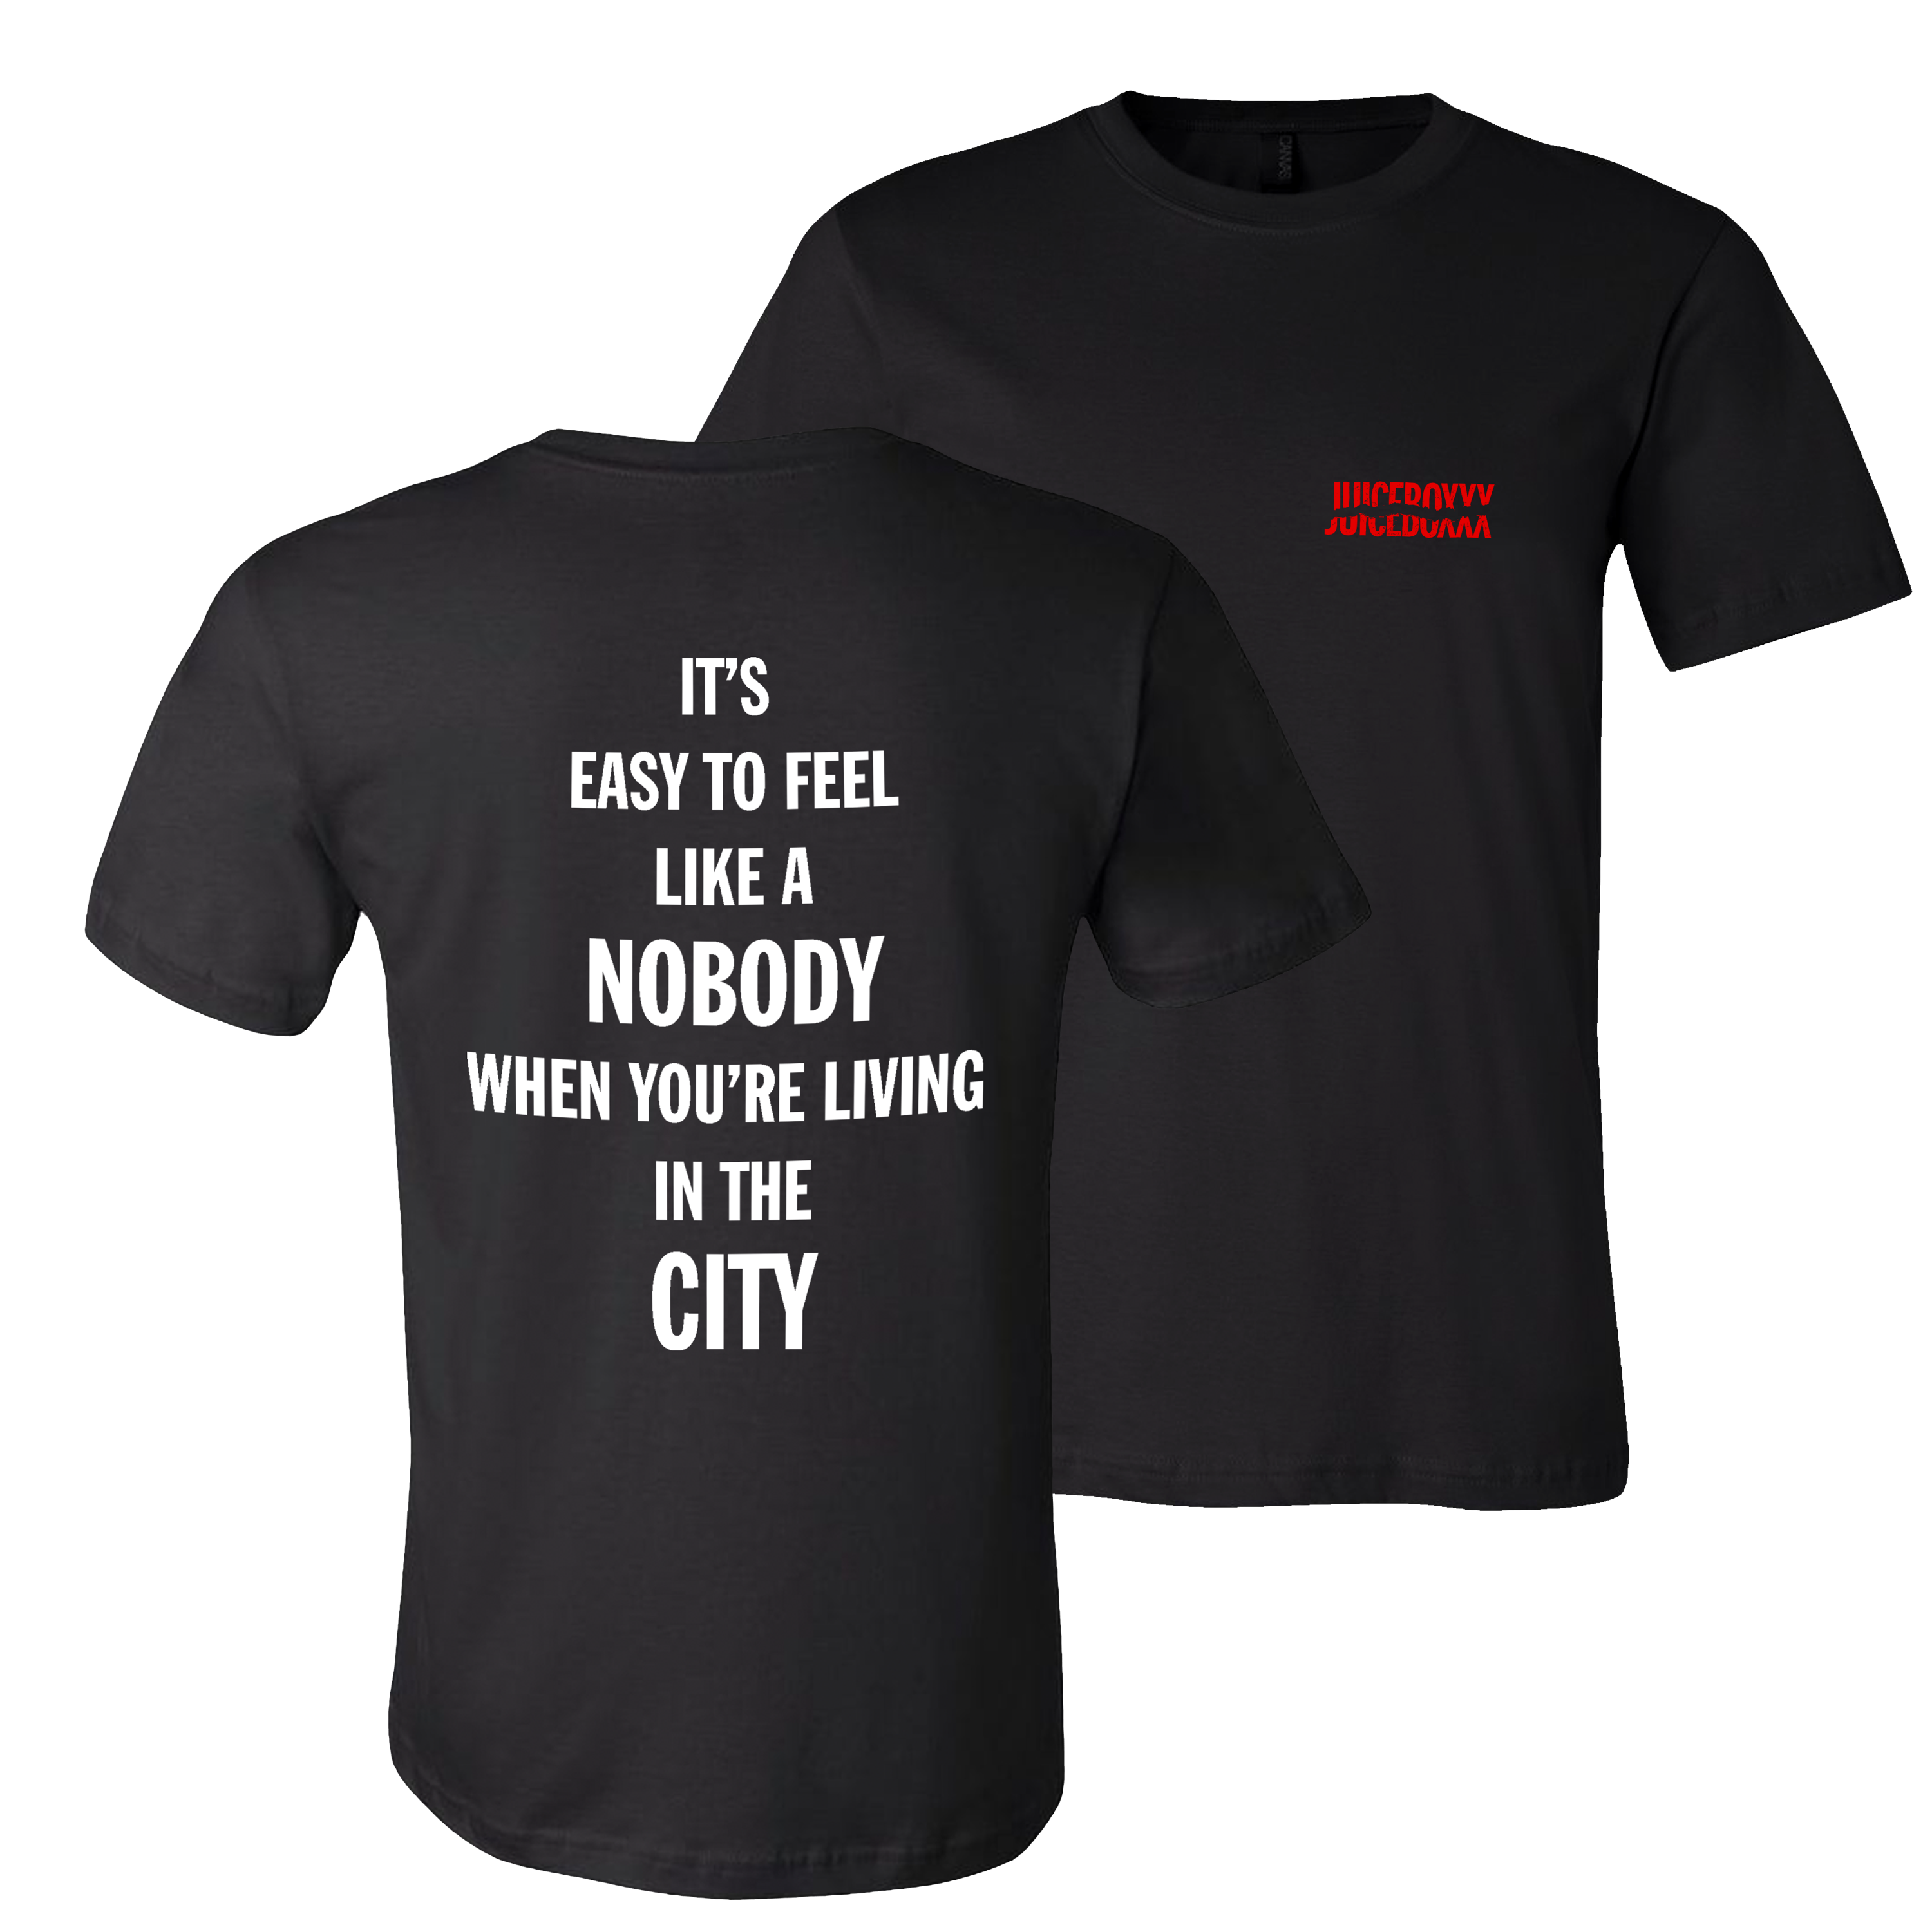 Juiceboxxx - It's Easy To Feel Like A Nobody When You're Living In The City - CD + Shirt Bundle